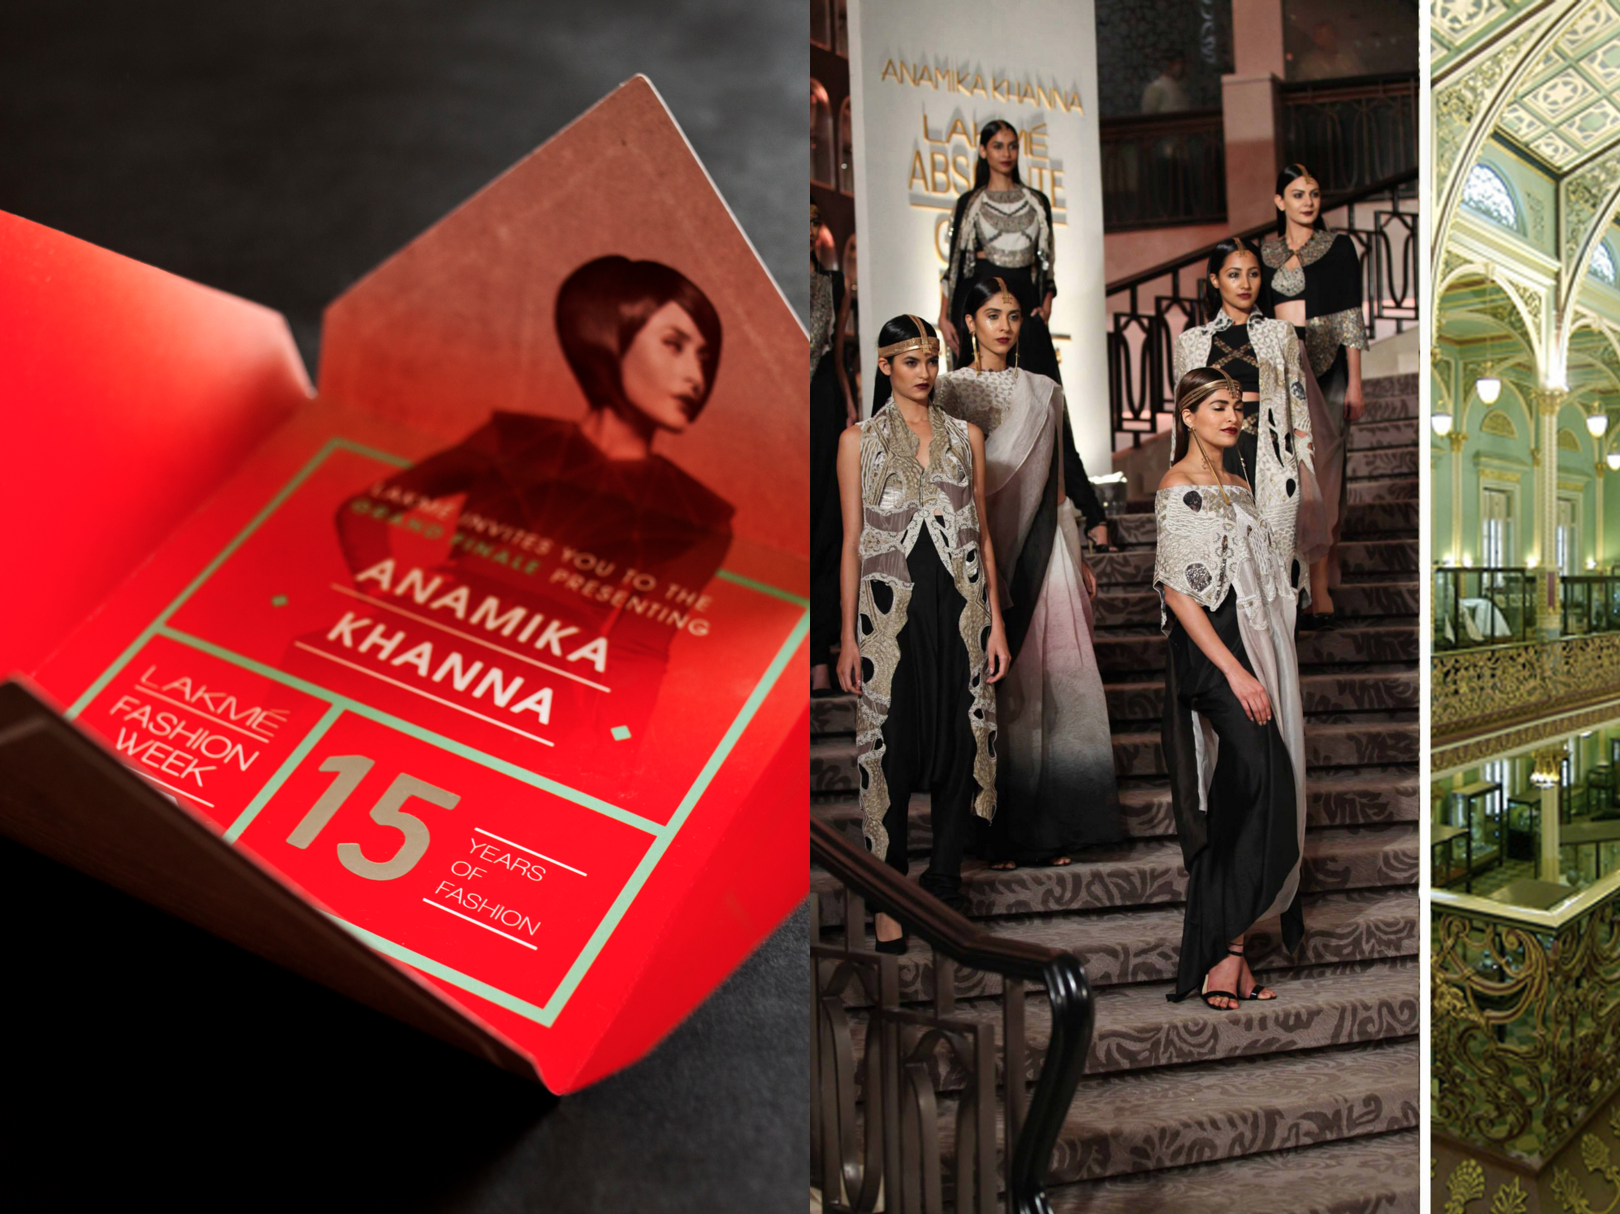 The event ended with the Grand Finalé with designer Anamika Khanna at the Dr. Bhau Daji Lad Museum,which is a building from the 17th century with breath-taking Victorian-style architecture and a bright turquoise interior.The invite was made specific to the designer's brief for her clothing line and in tandem with the location of the event.